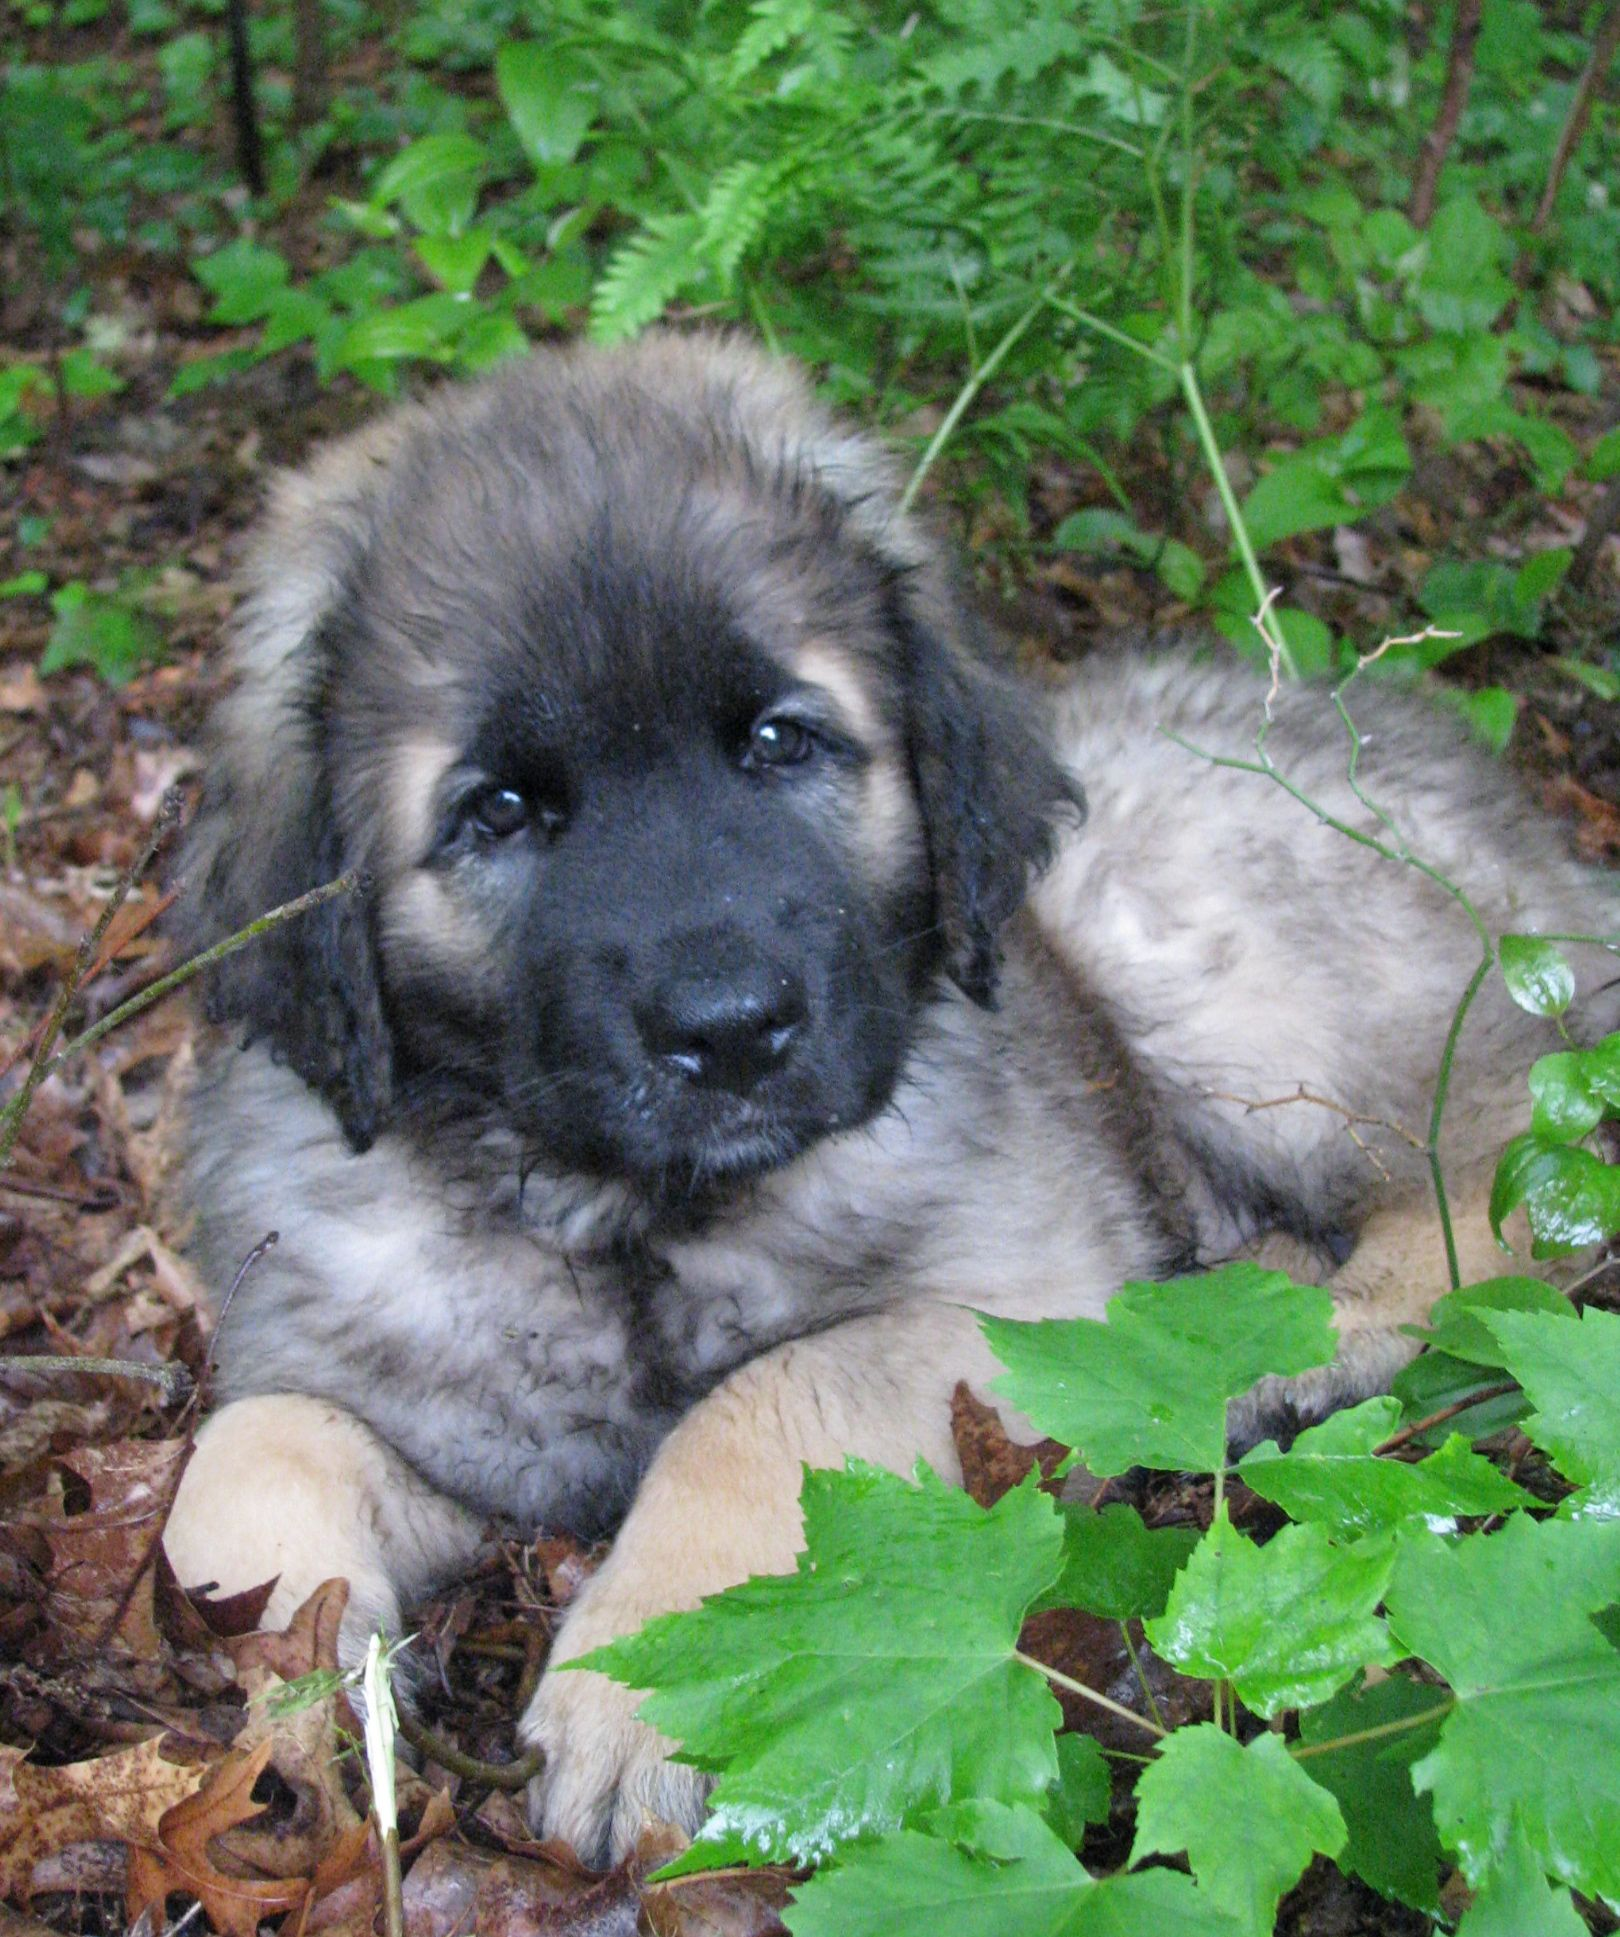 Leonberger | Dog breeds, Cute cats, dogs, Large dog breeds |Leonberger Dogs And Puppies